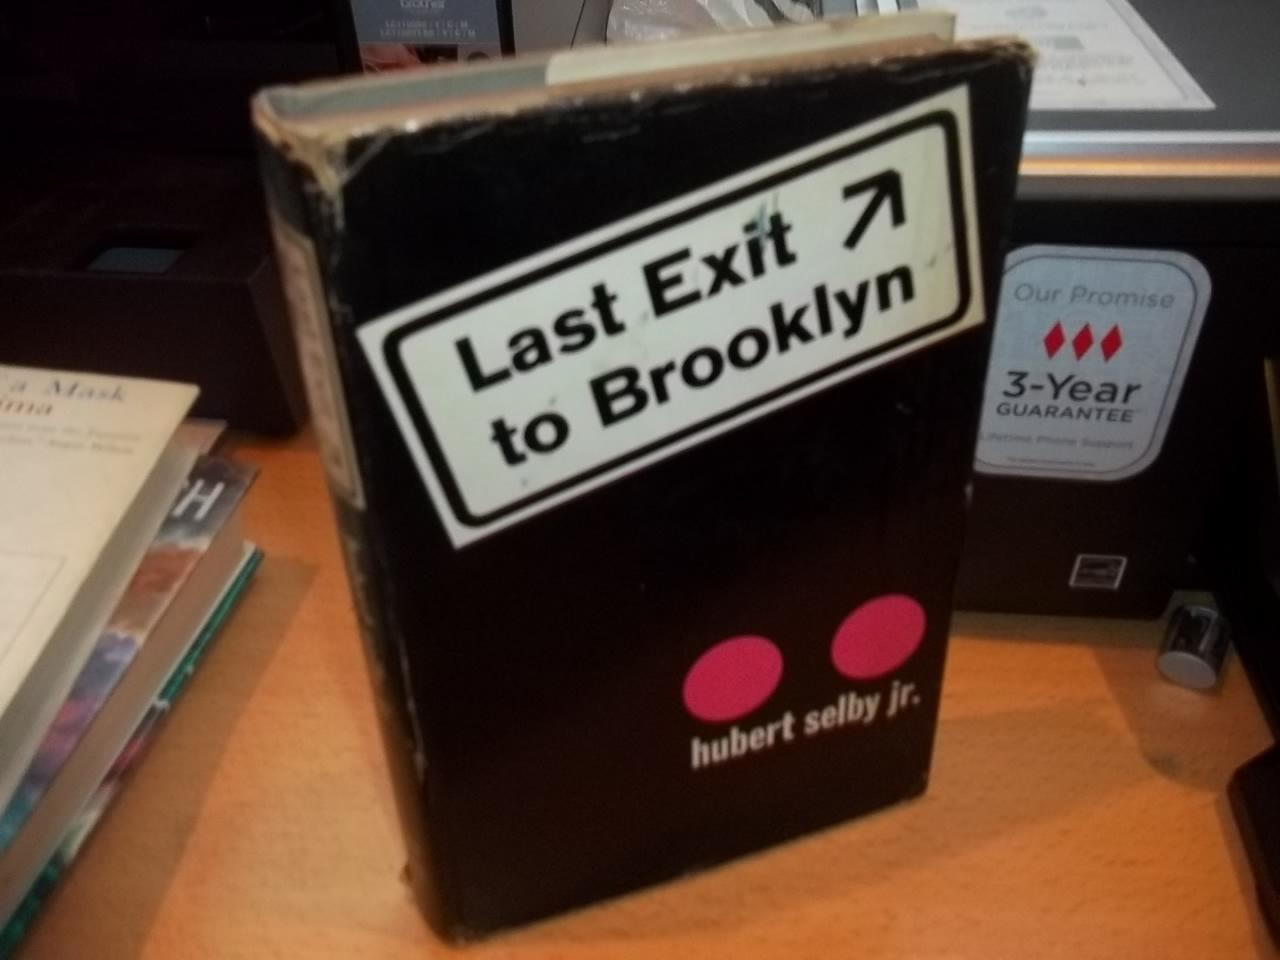 Last Exit to Brooklyn Selby, Hurbert Jr. Good Hardcover